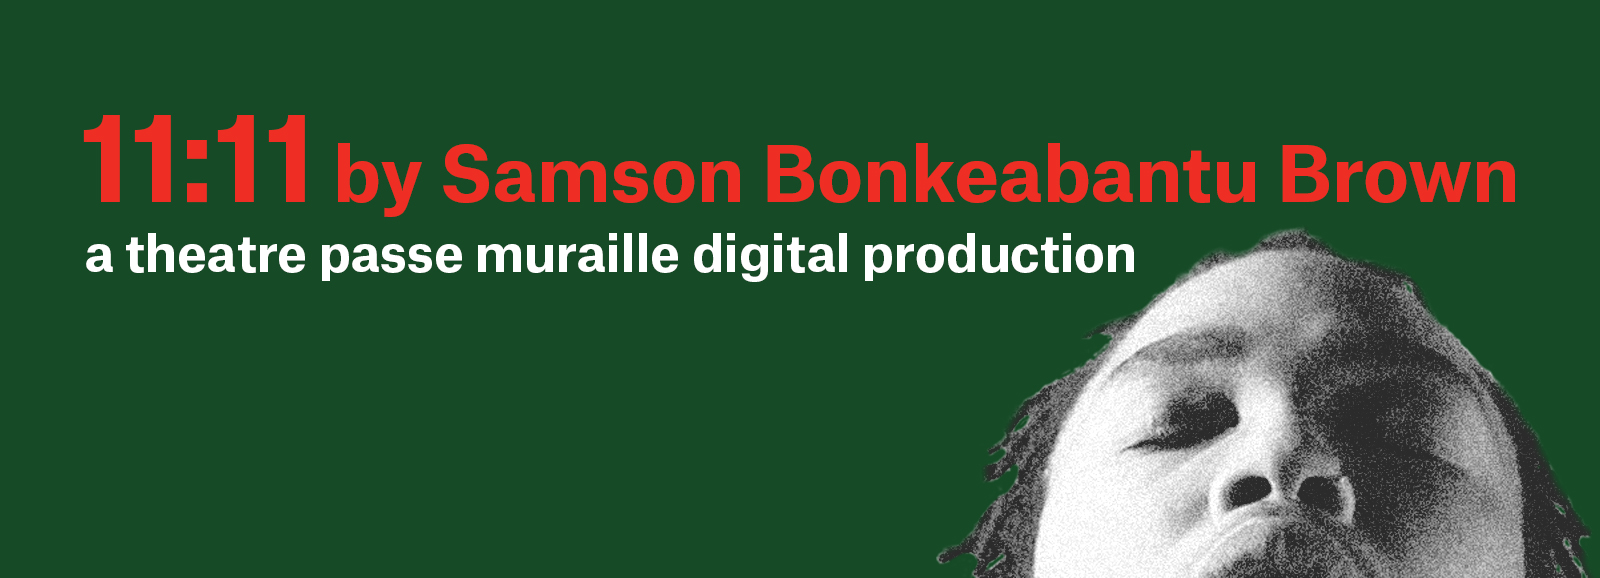 11:11 by Samson Bonkeabantu Brown. a Theatre Passe Muraille digital production